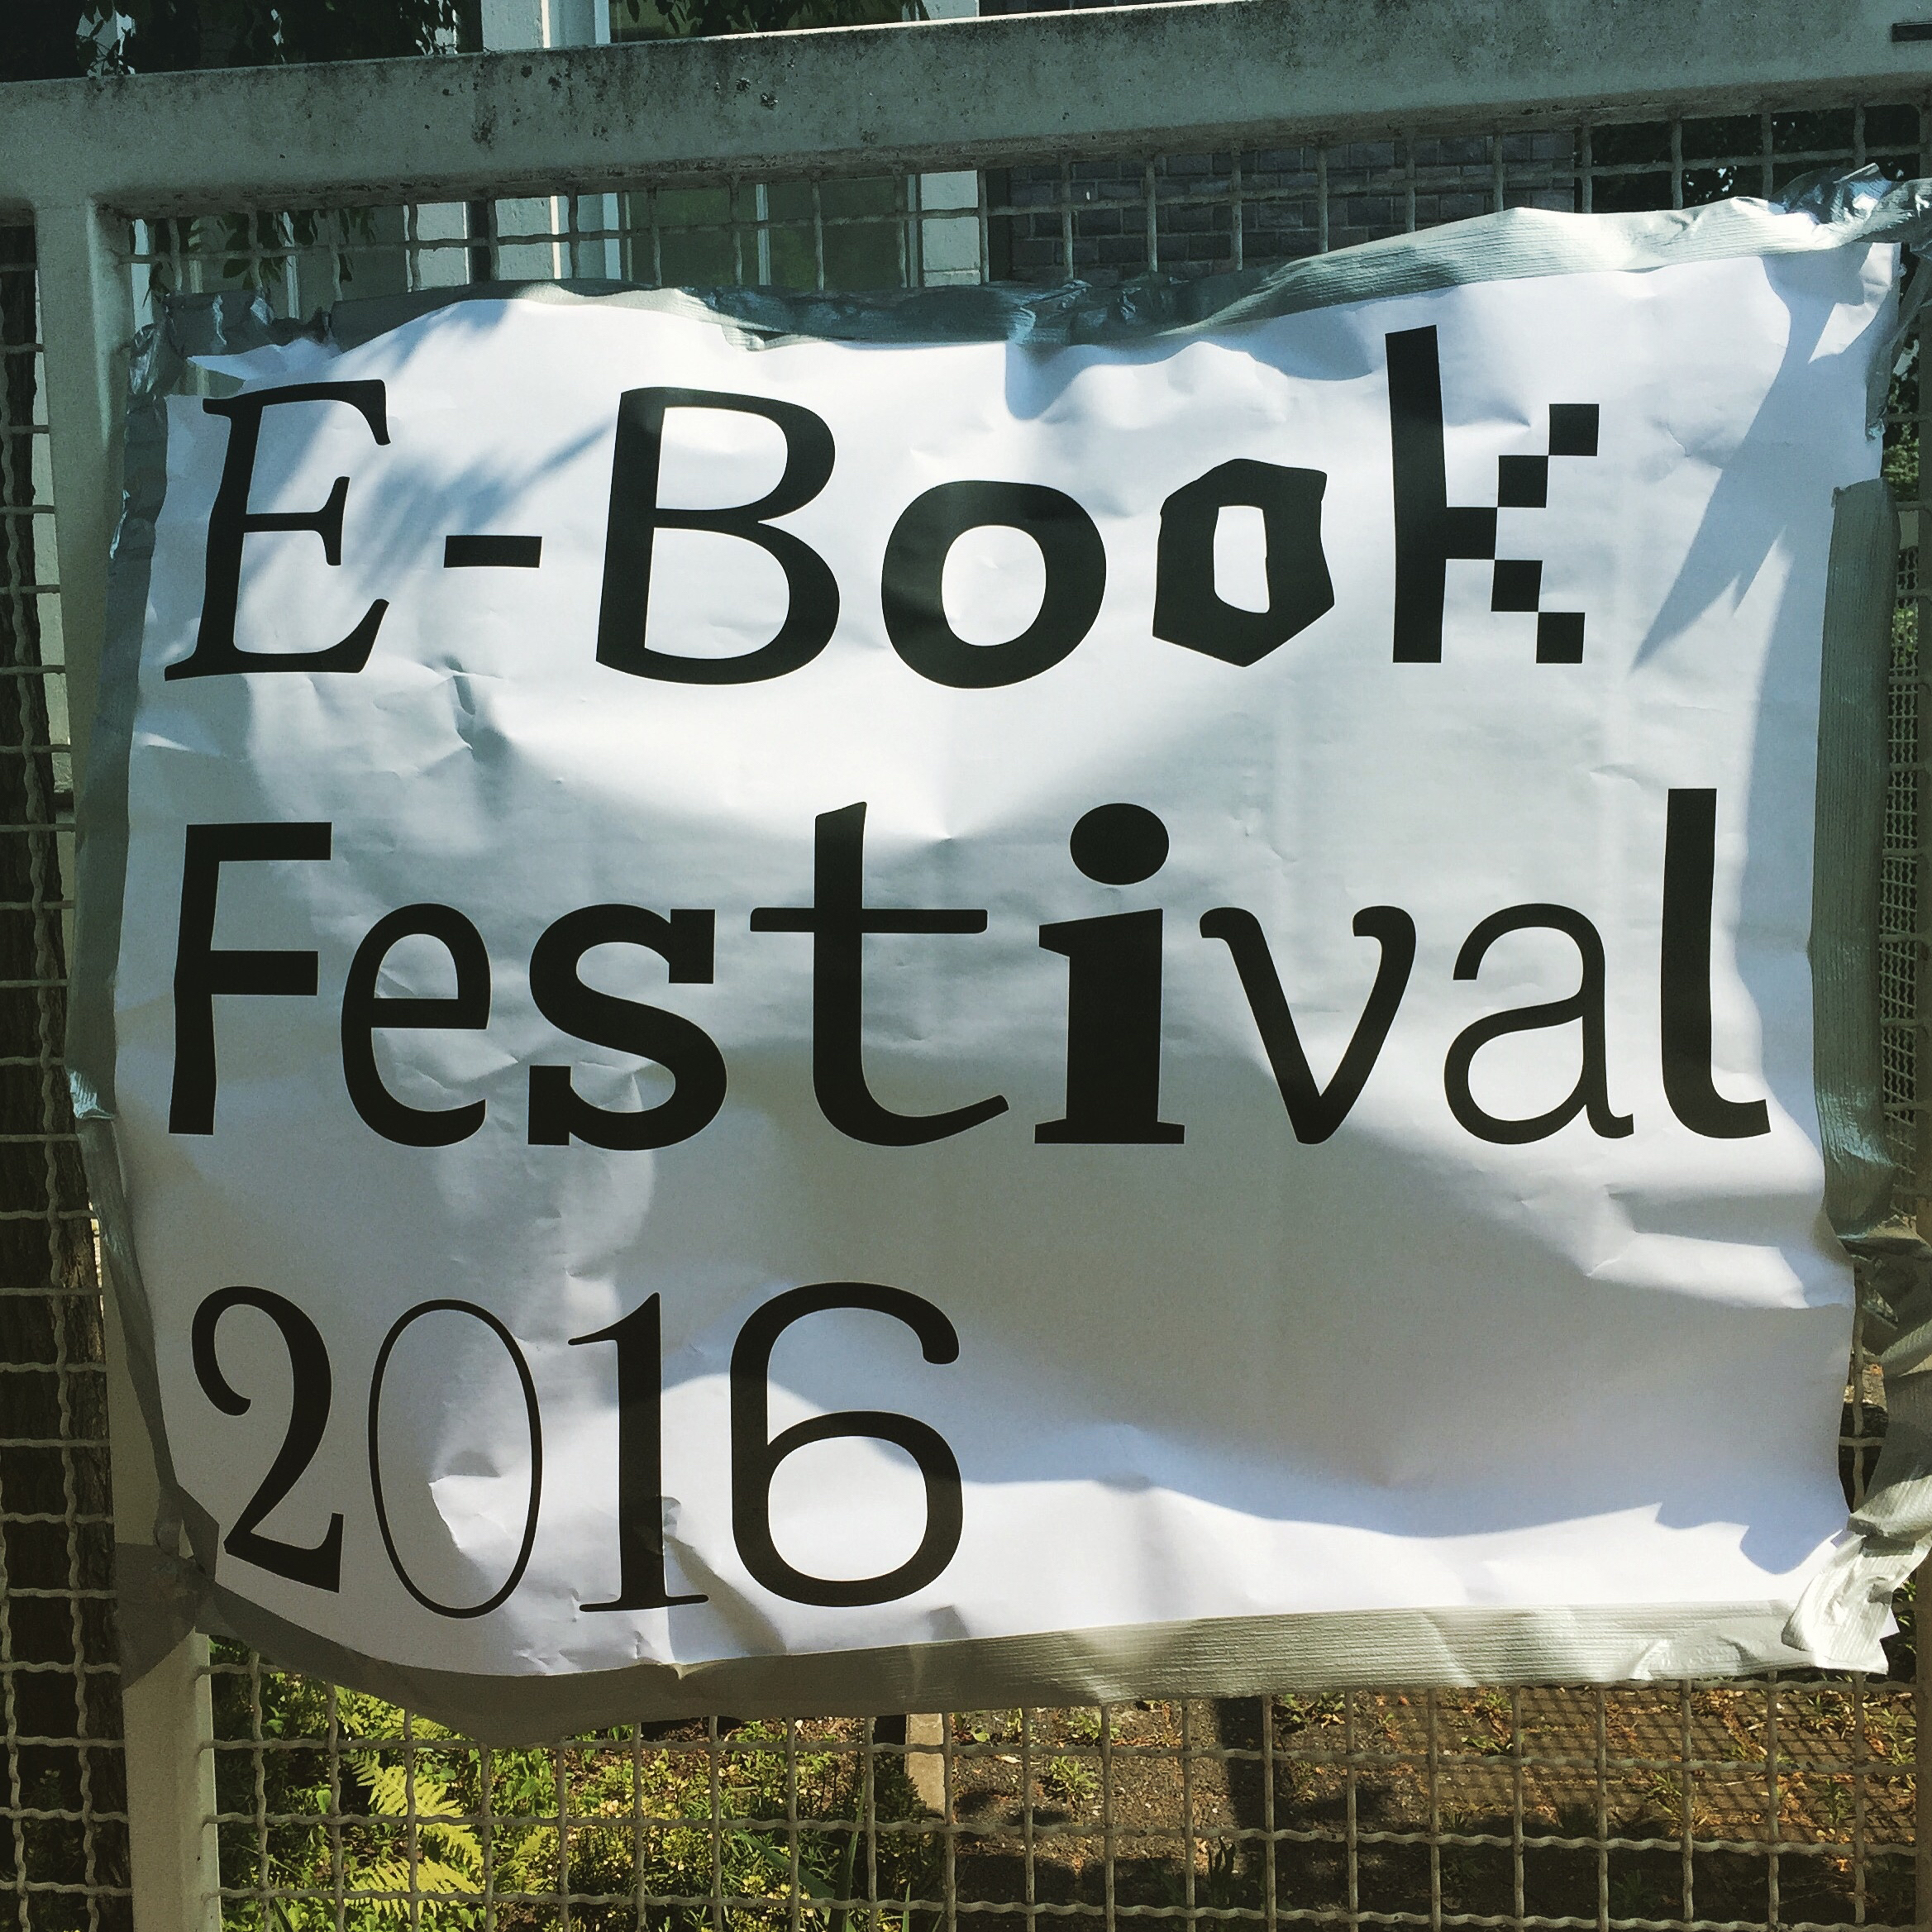 E-Book Festival 2016 Logo Design in use Veranstaltung Branding